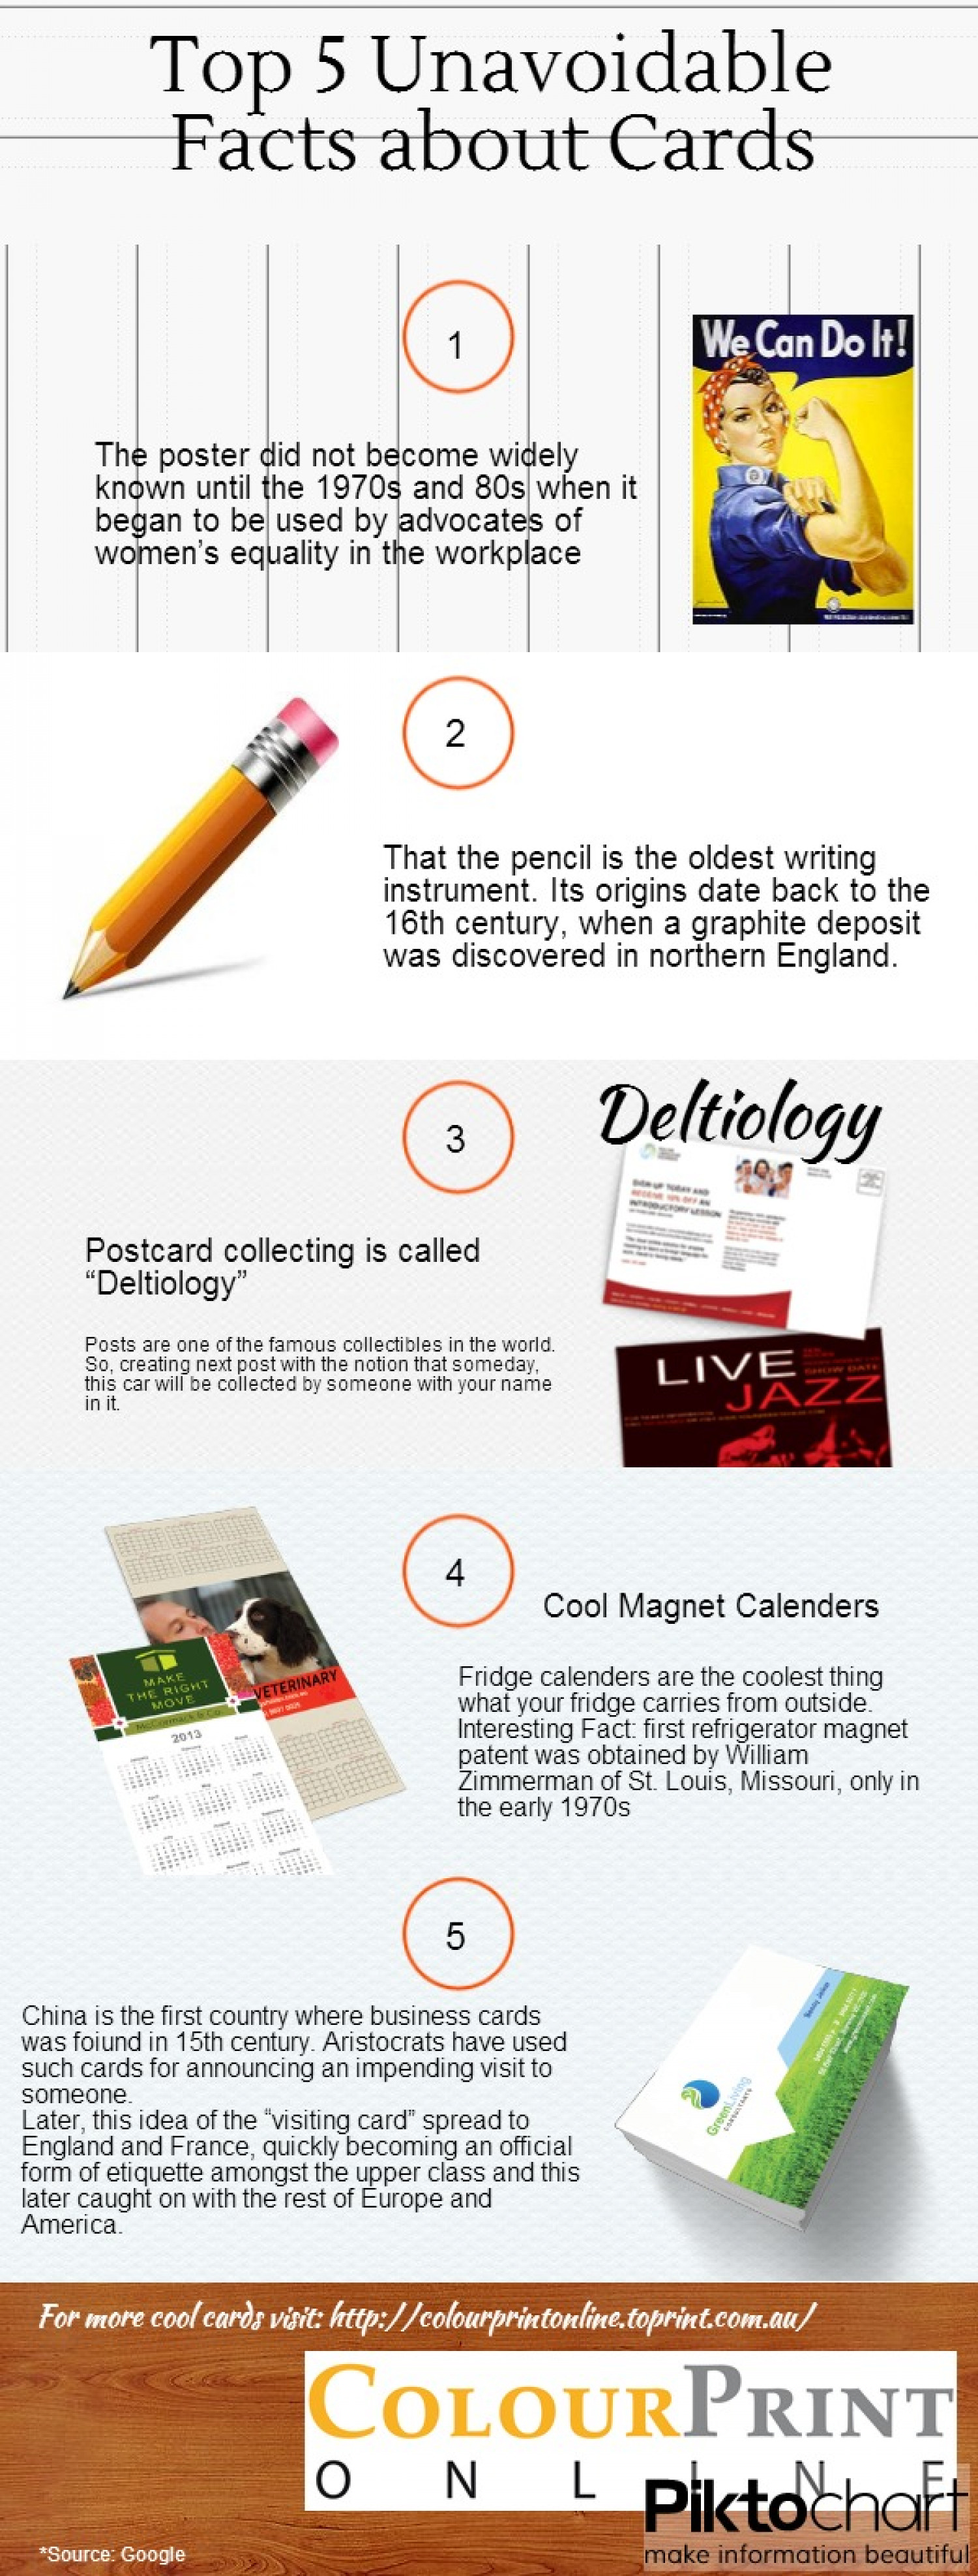 Top Unavoidable Interesting Facts about Cards Infographic